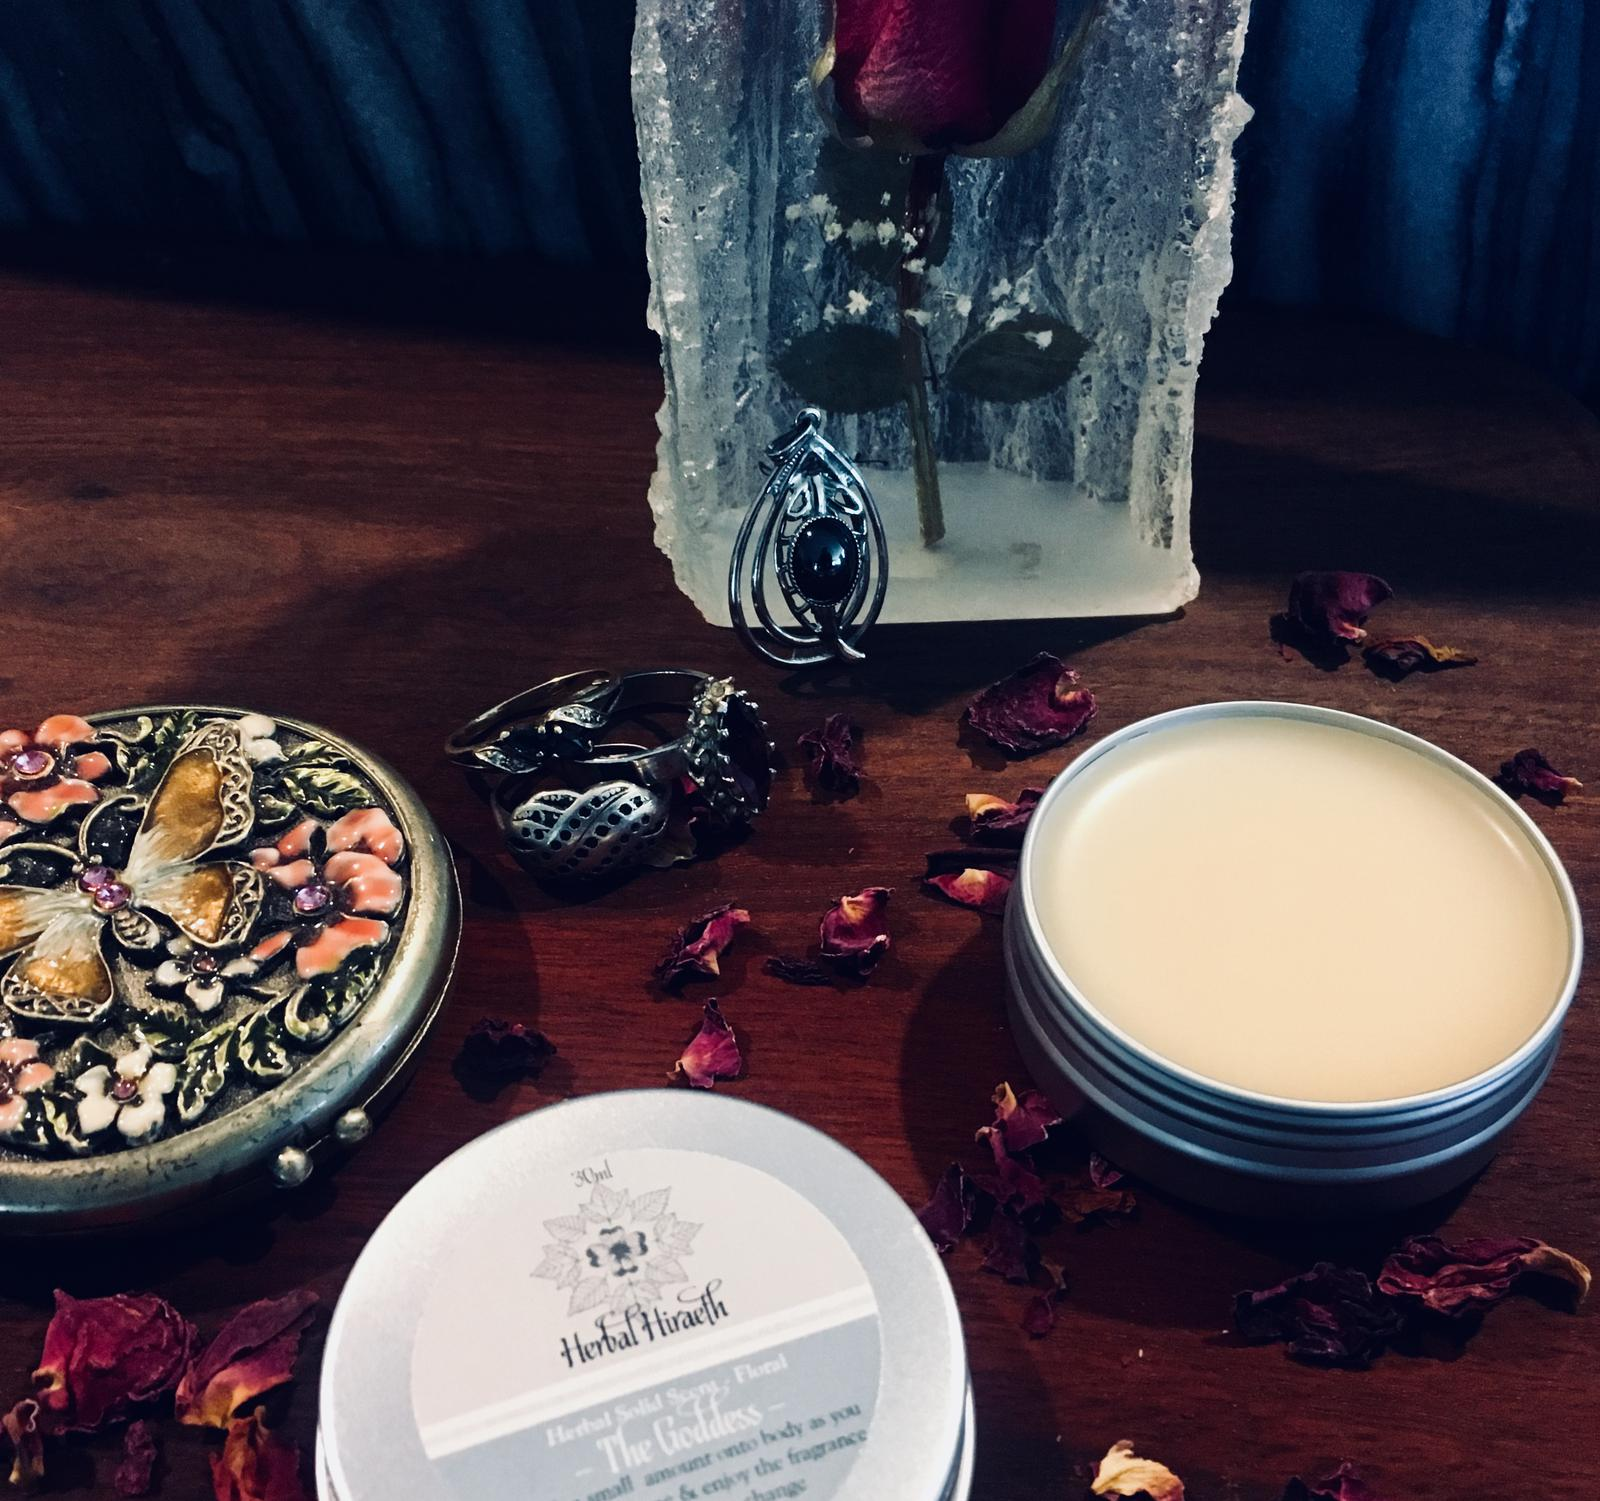 The Goddess Solid Scent Perfume